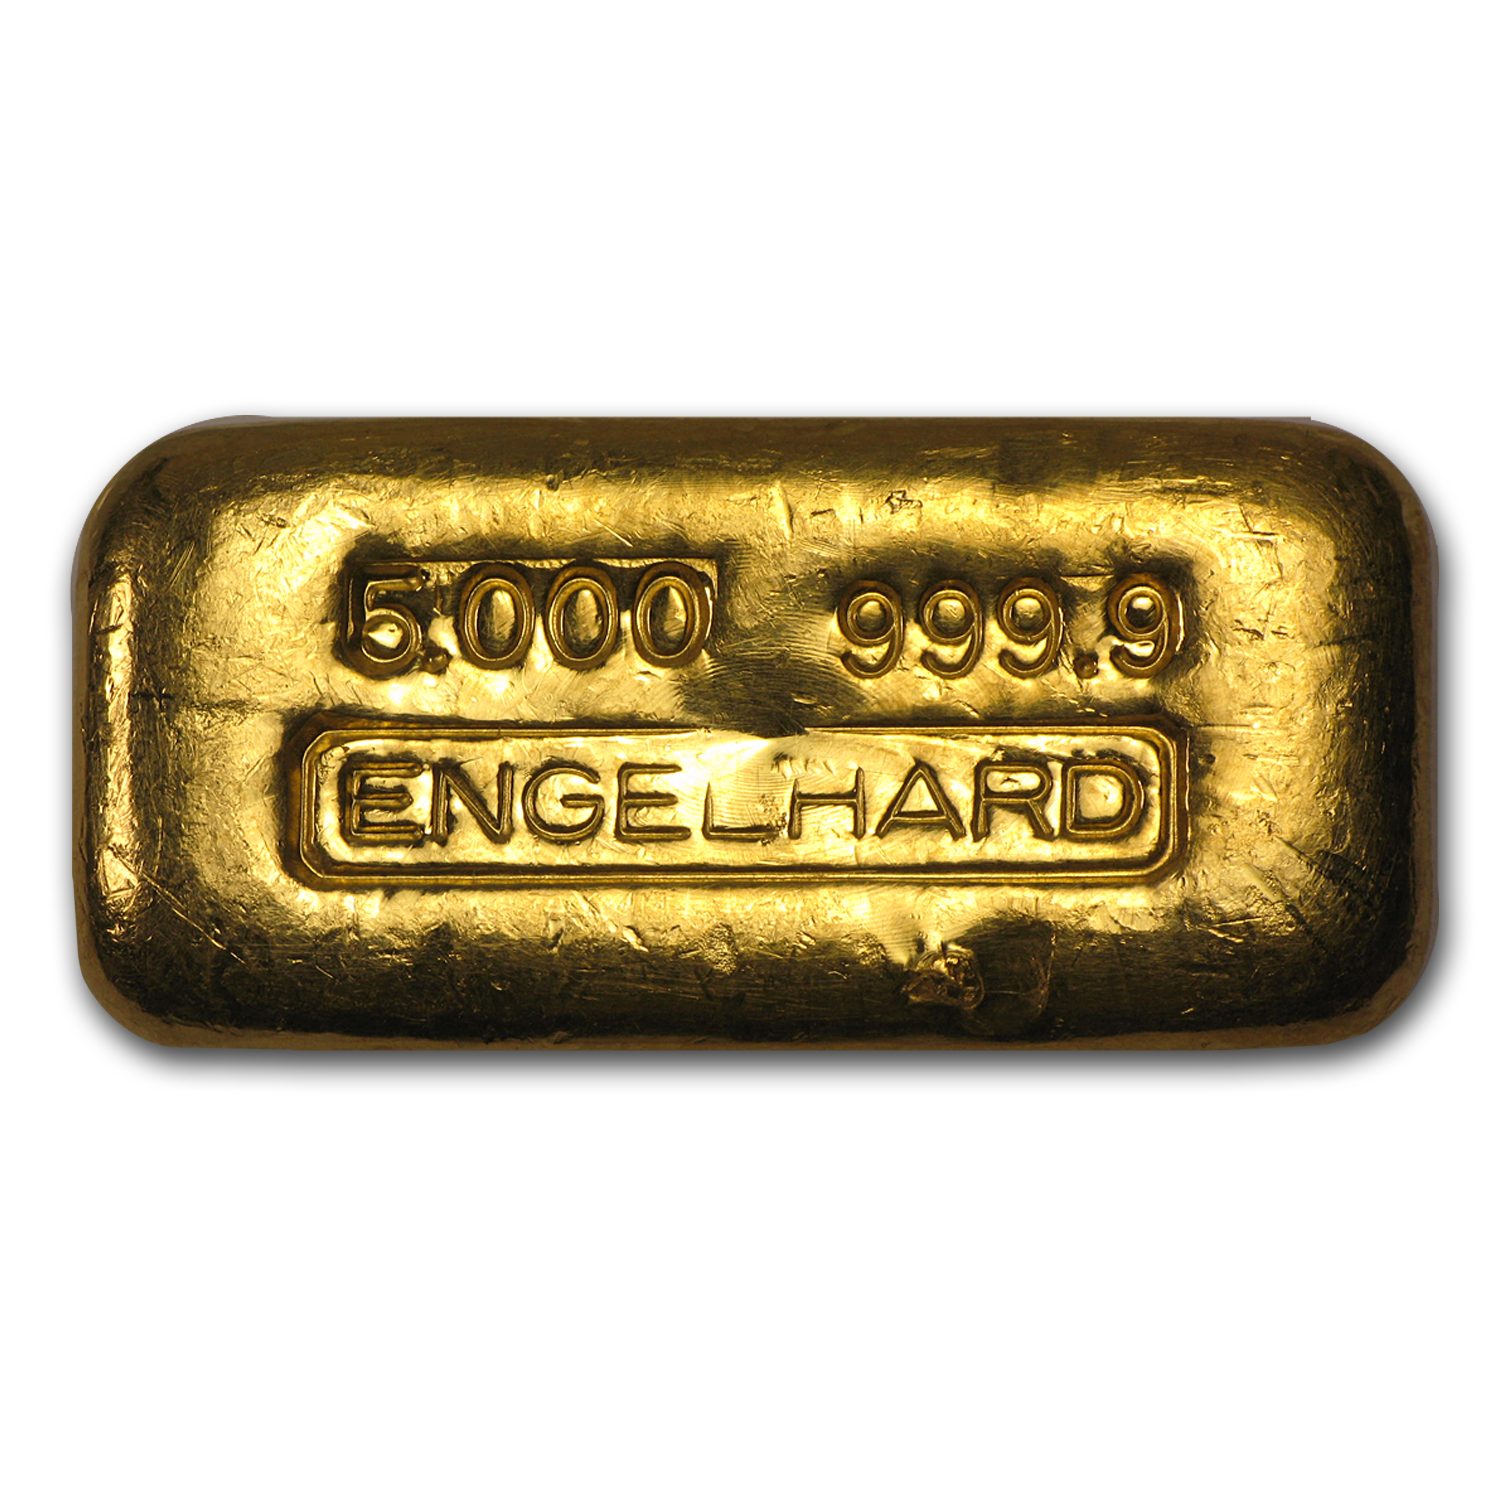 5 oz Gold Bar - Engelhard (Poured, Loaf-Style)